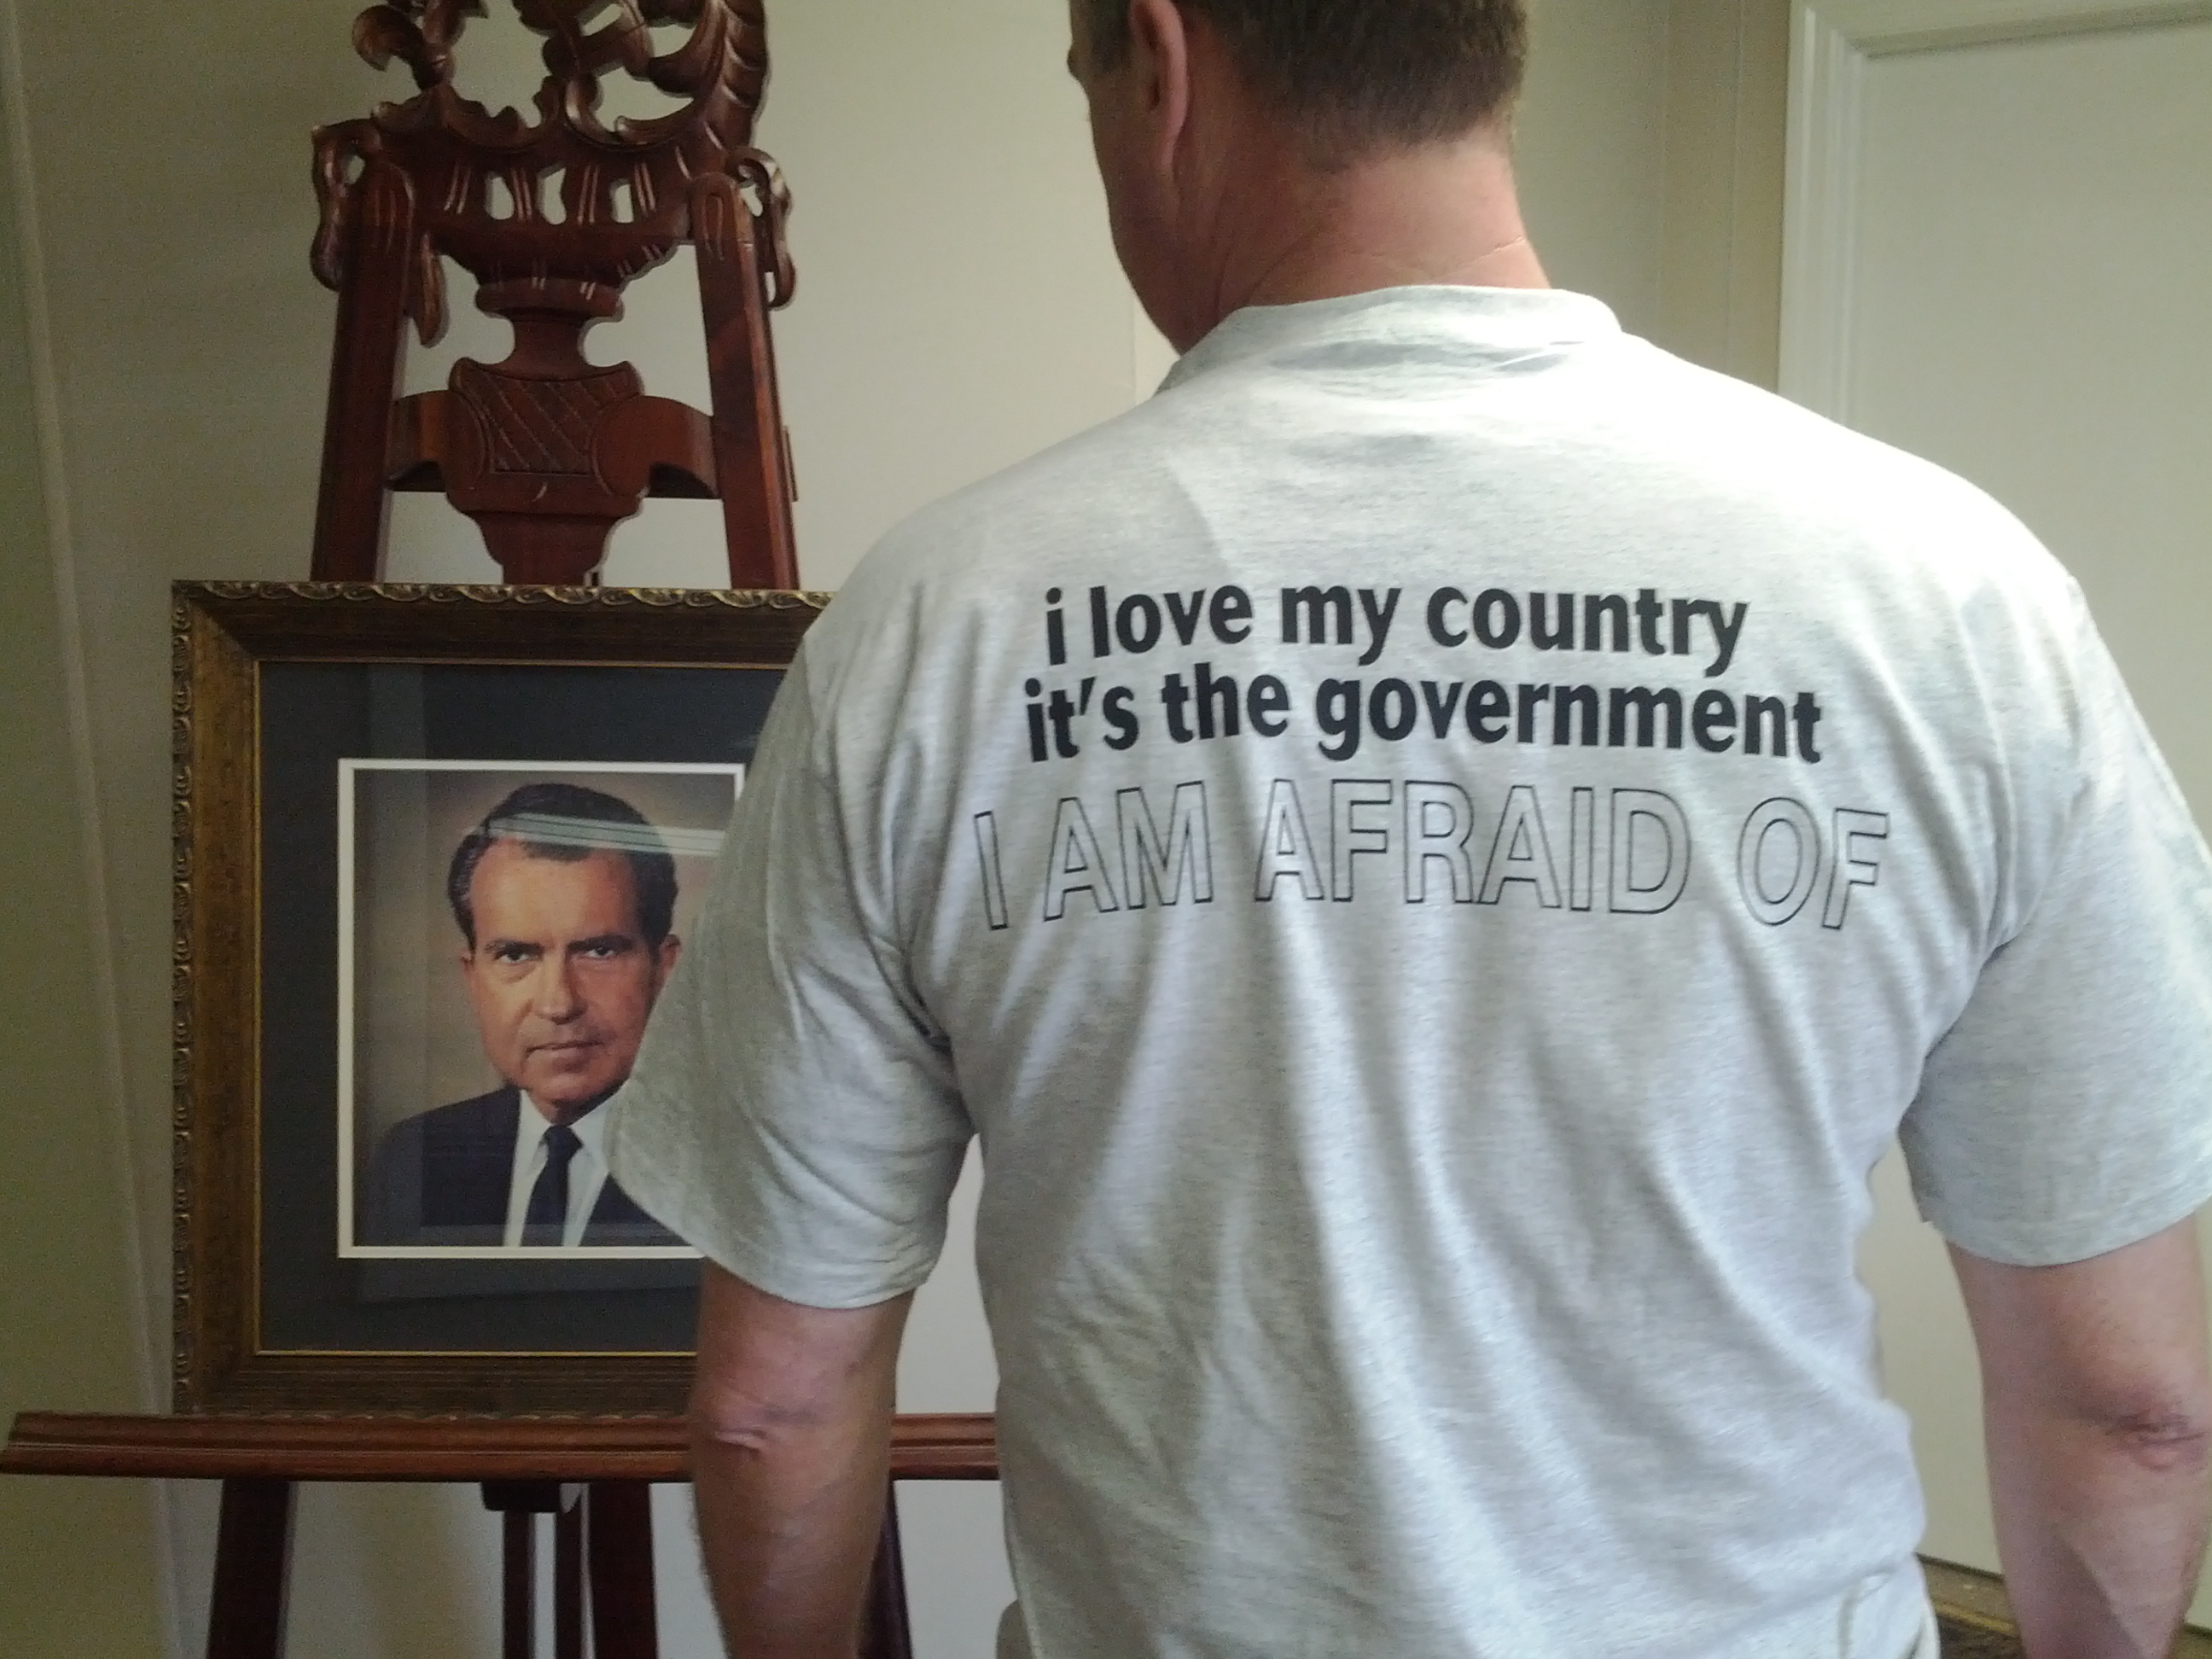 i-love-my-country-its-the-government-i-am-adraid-of-shirt.jpg